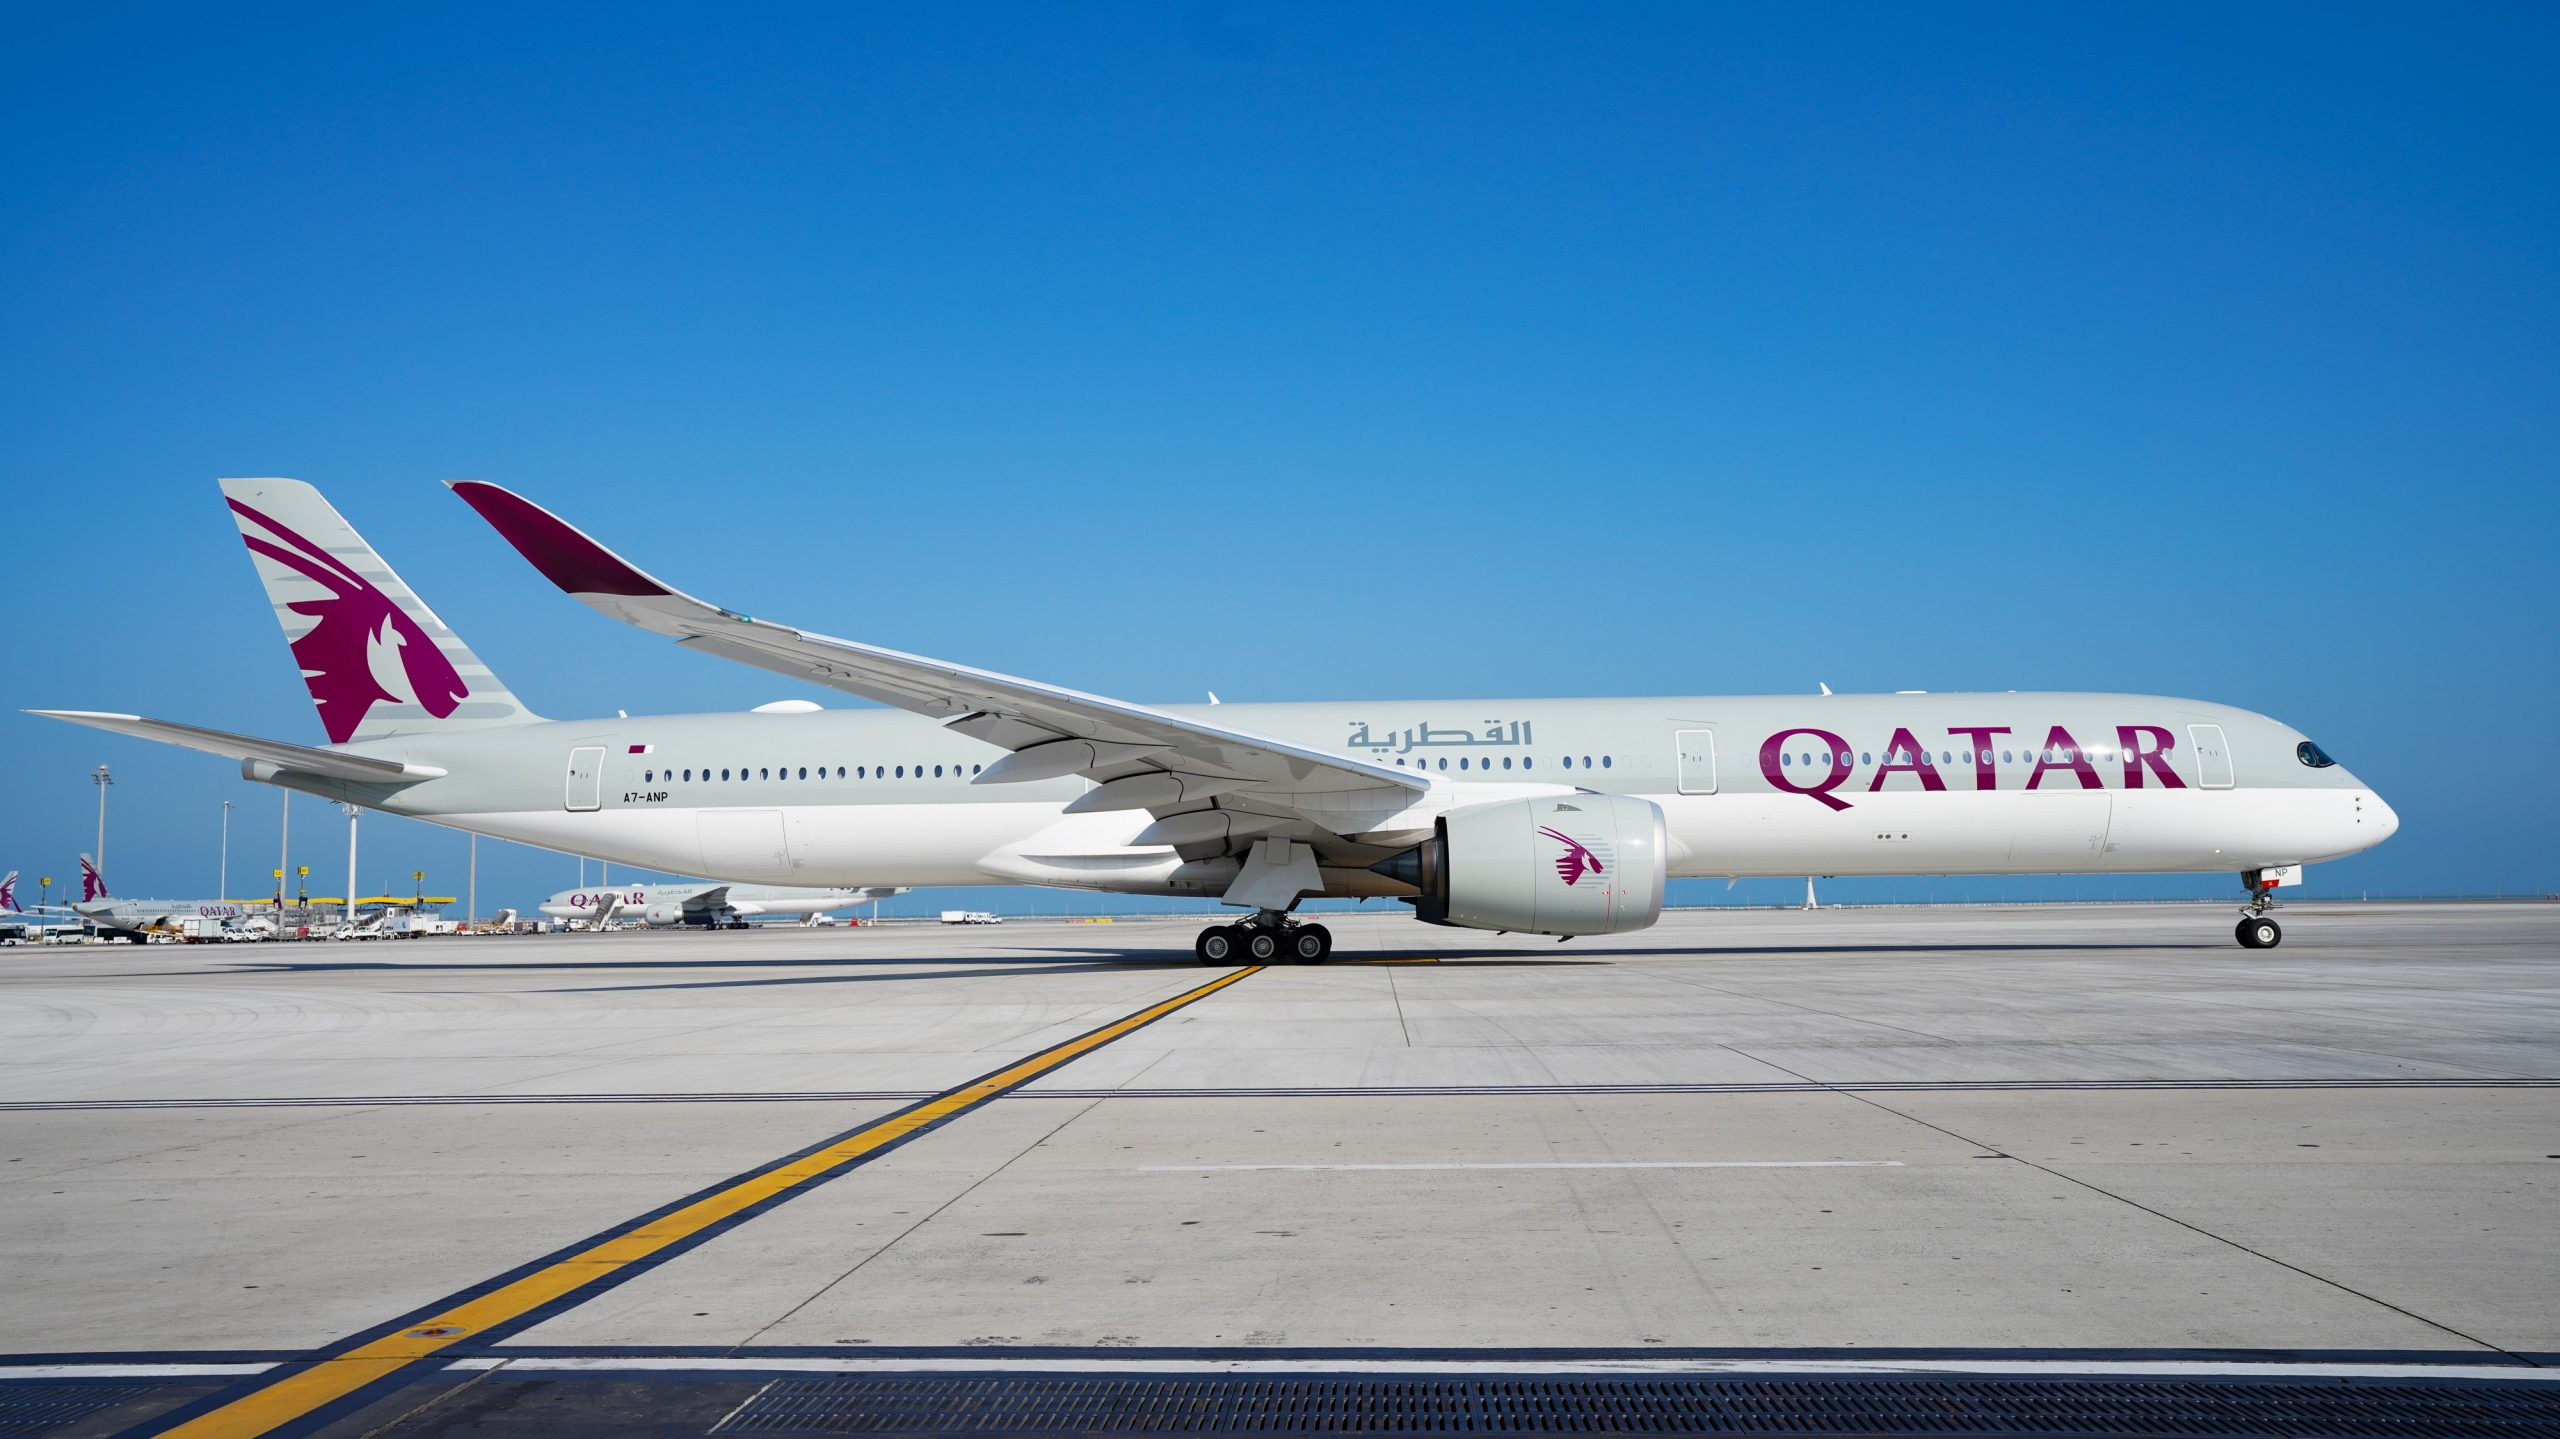 UEFA announced that Qatar Airways became official airline company of Europe Championship 2020